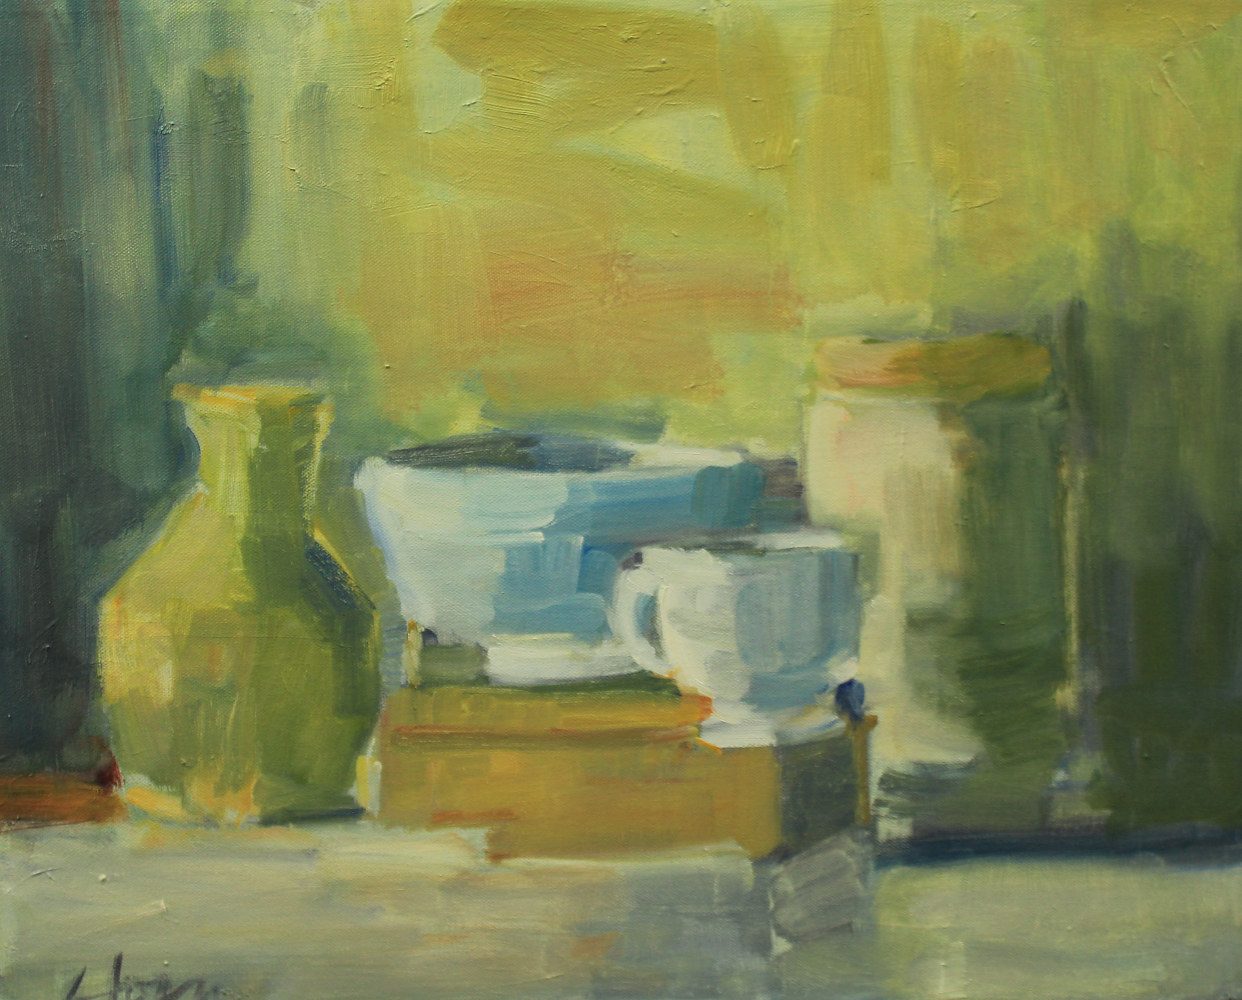 "Still Life with small white cup, oil on canvas, 16"" x 20"" by Susan Horn"